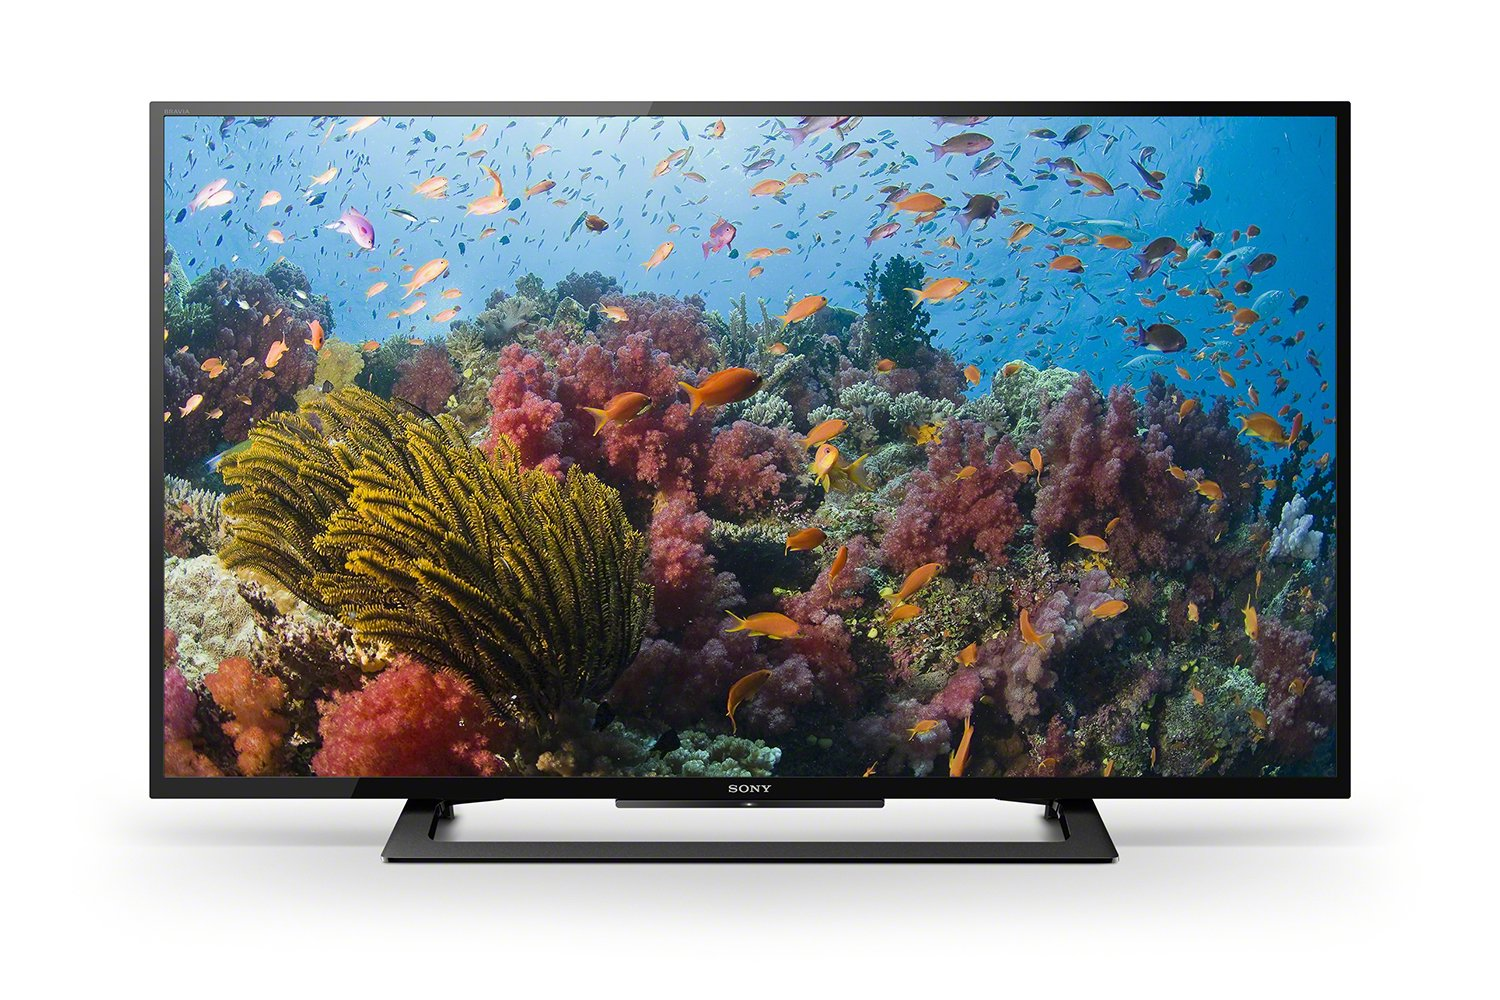 Sony 81.3 cm (32 inches) Bravia KLV-32R202F HD Ready LED TV